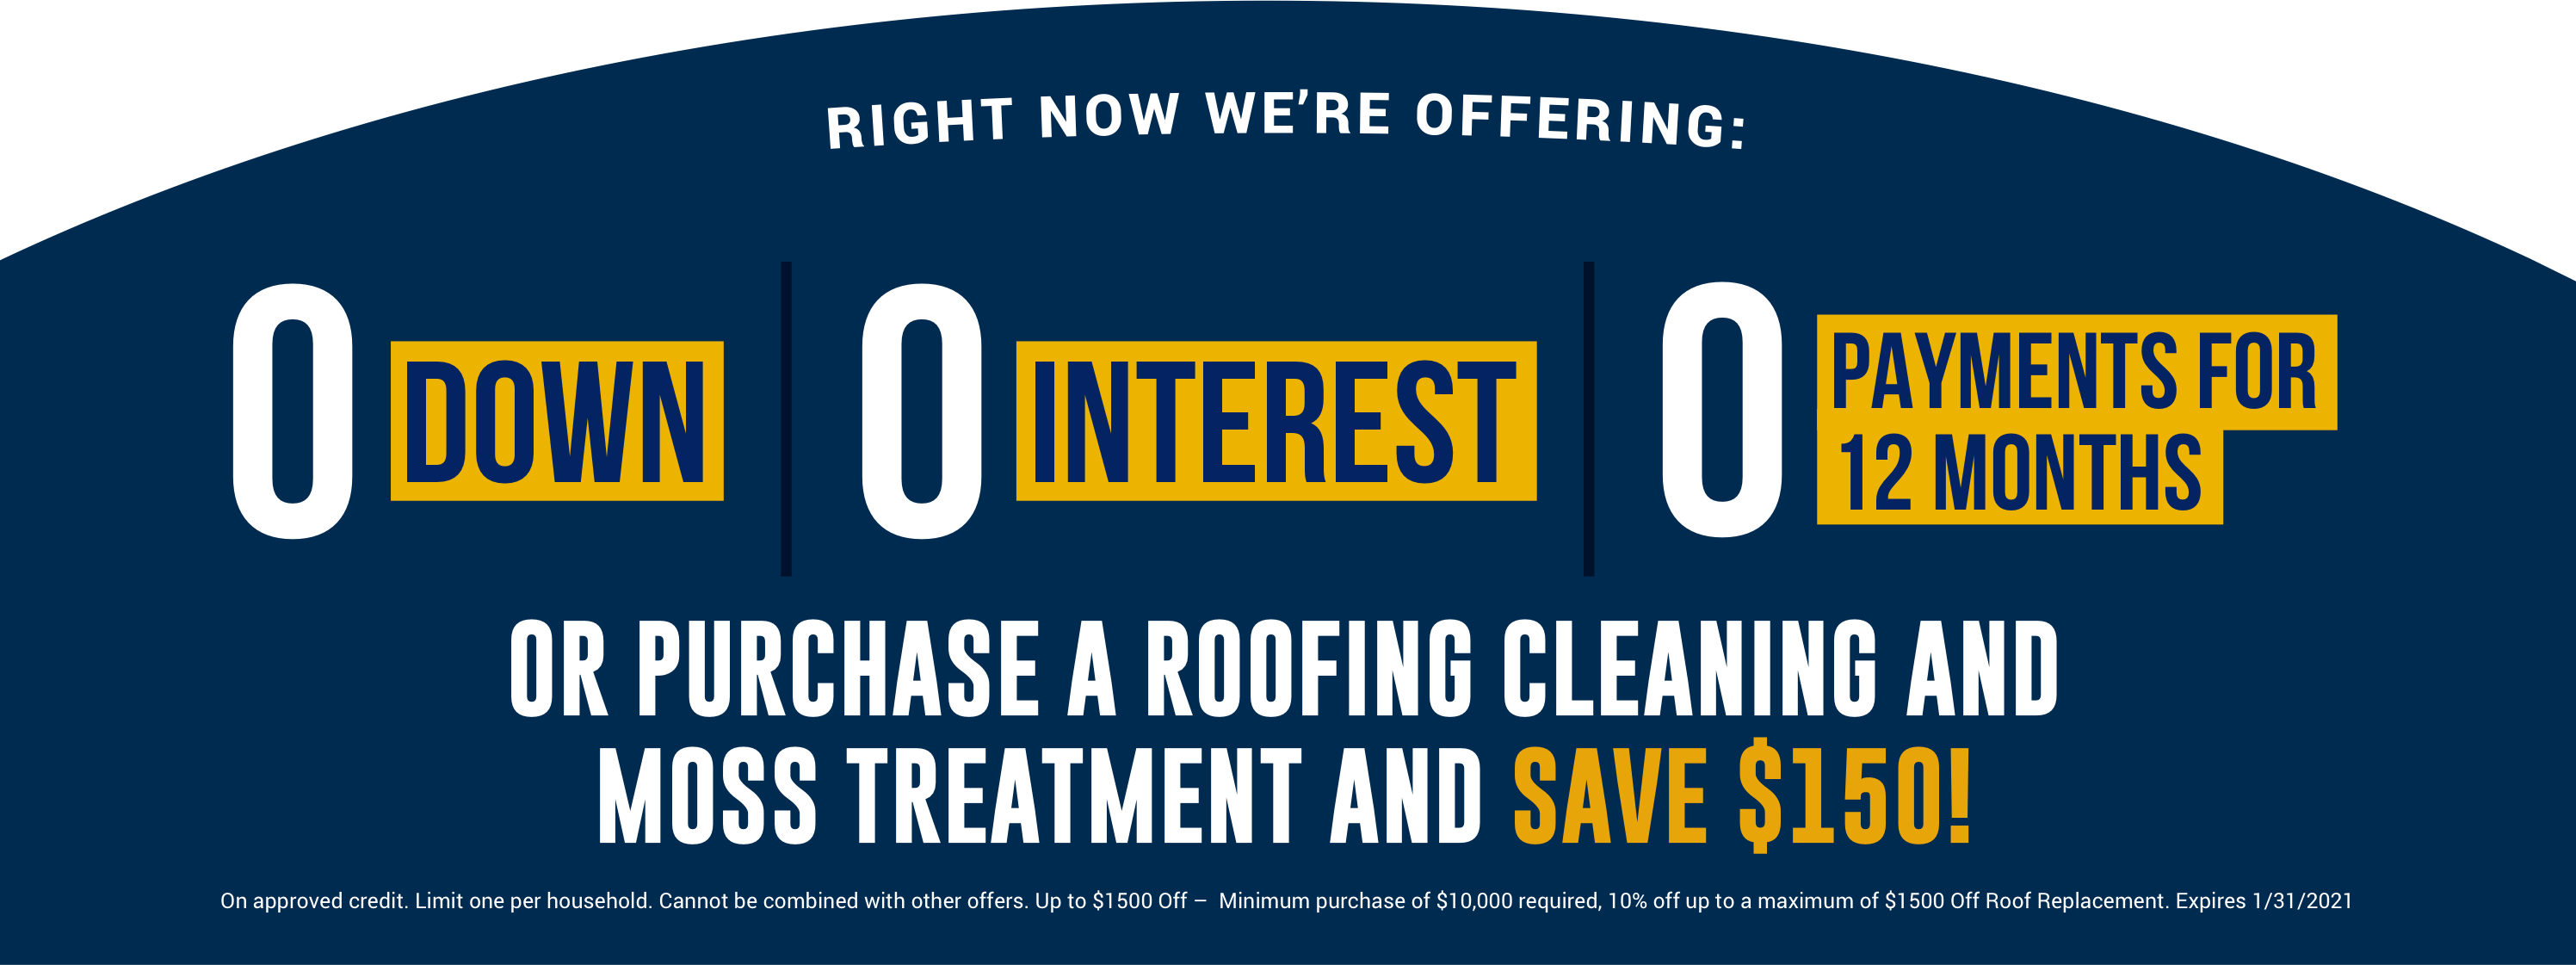 Roofing Special Offer, Roof Cleaning & Moss Treatment